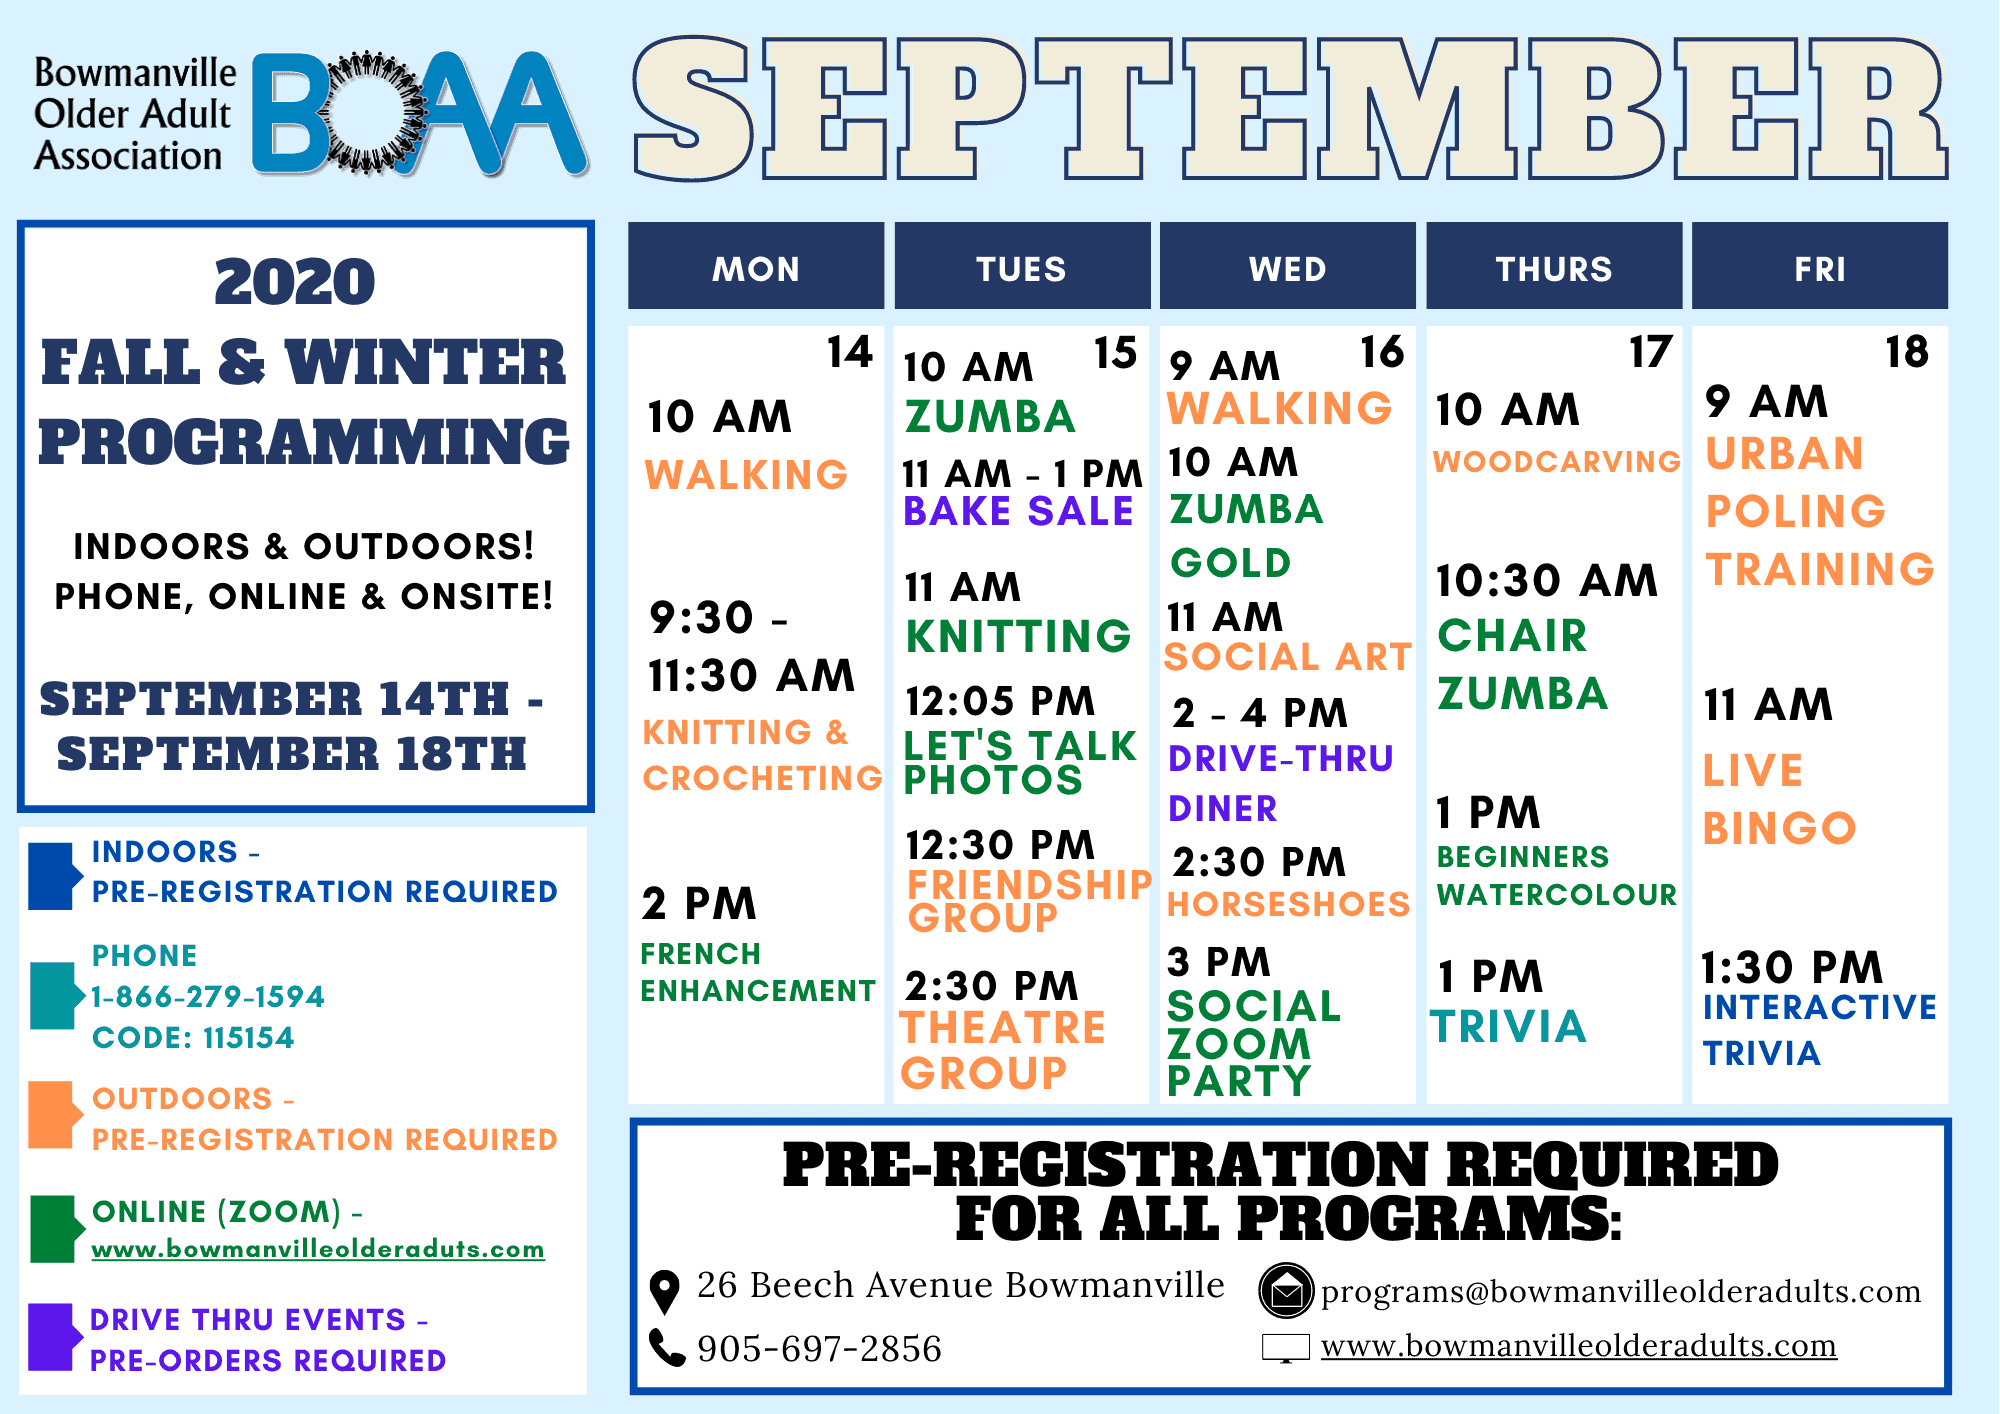 BOAA's NEW 2020 Fall & Winter Programming!